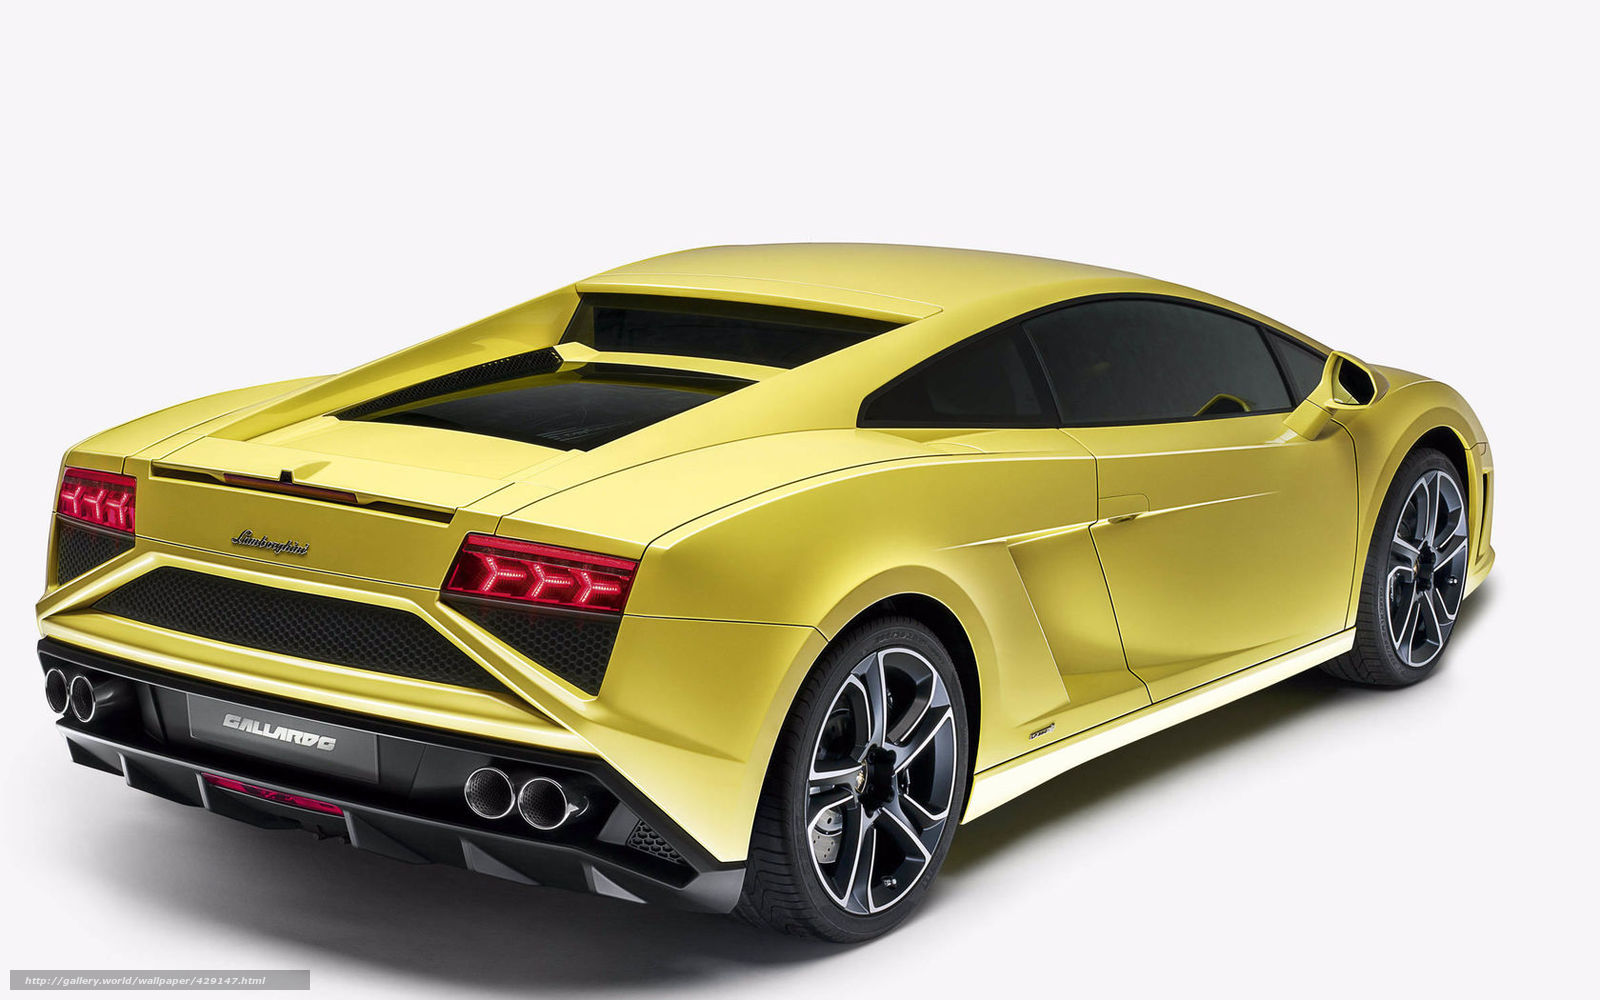 Download wallpap...Yellow Lamborghini Gallardo Wallpaper